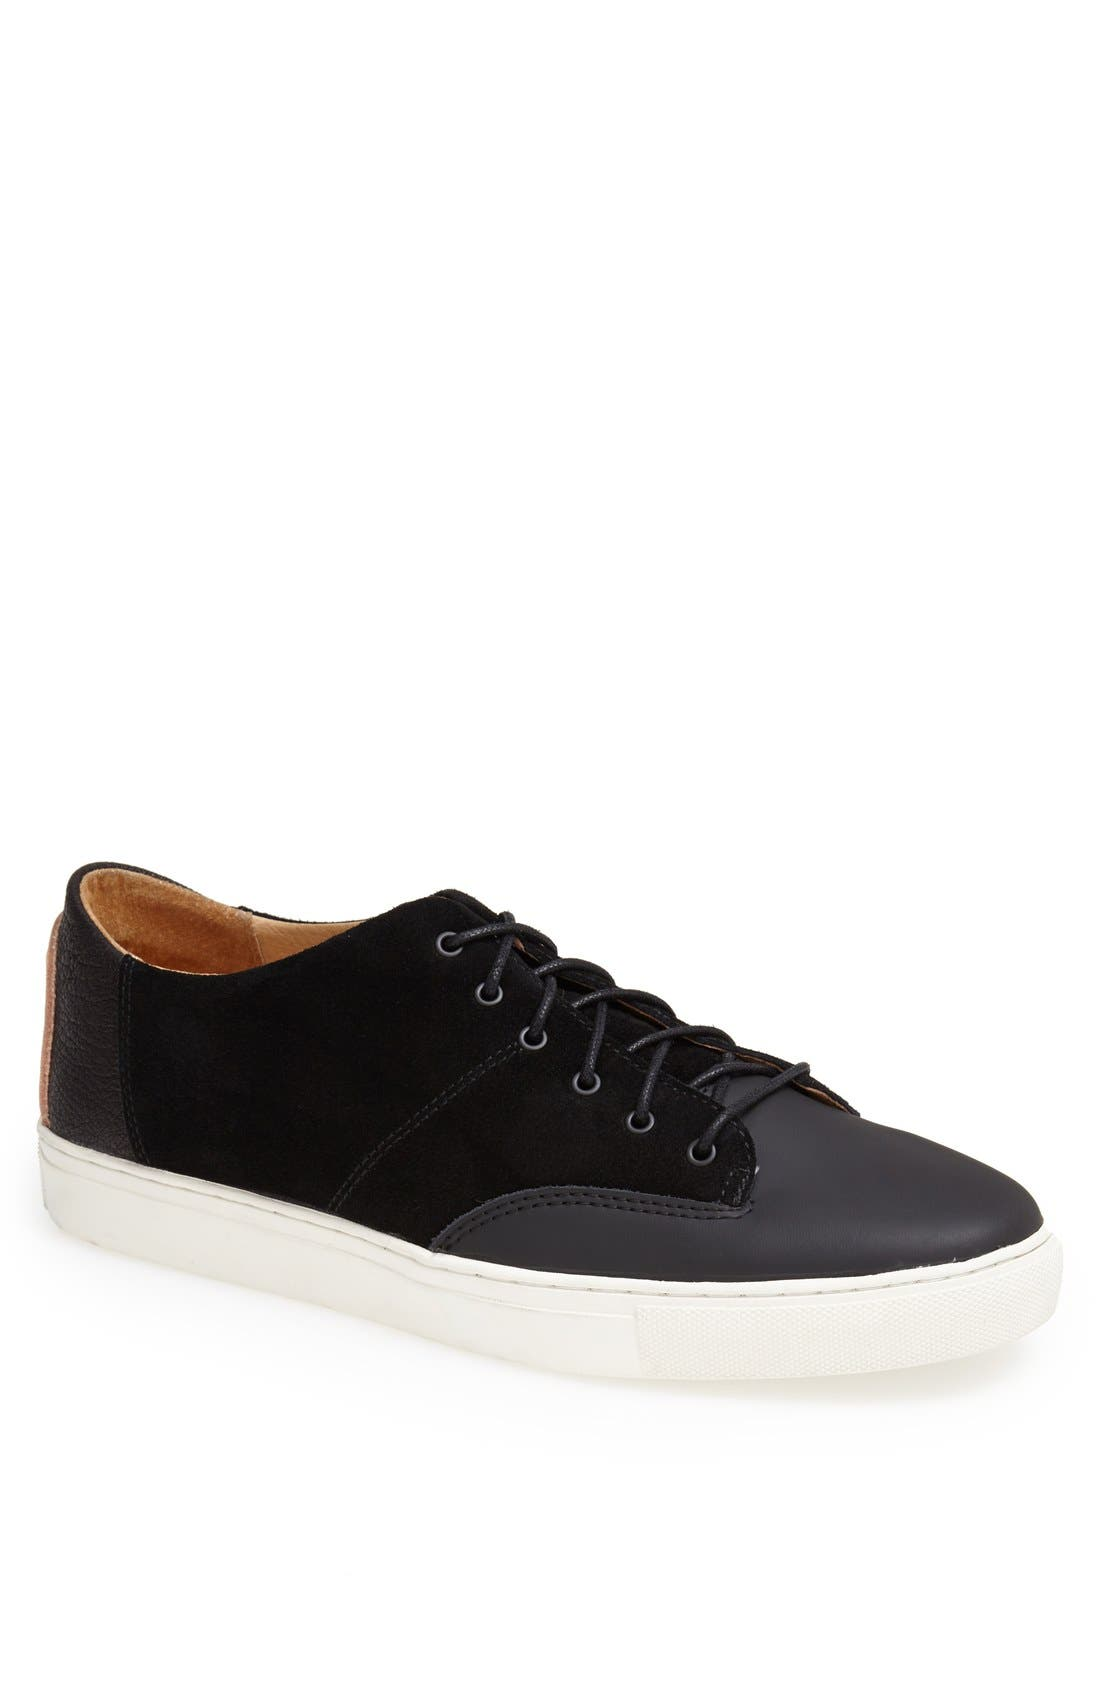 Thorocraft 'Cooper' Sneaker,                             Main thumbnail 1, color,                             001